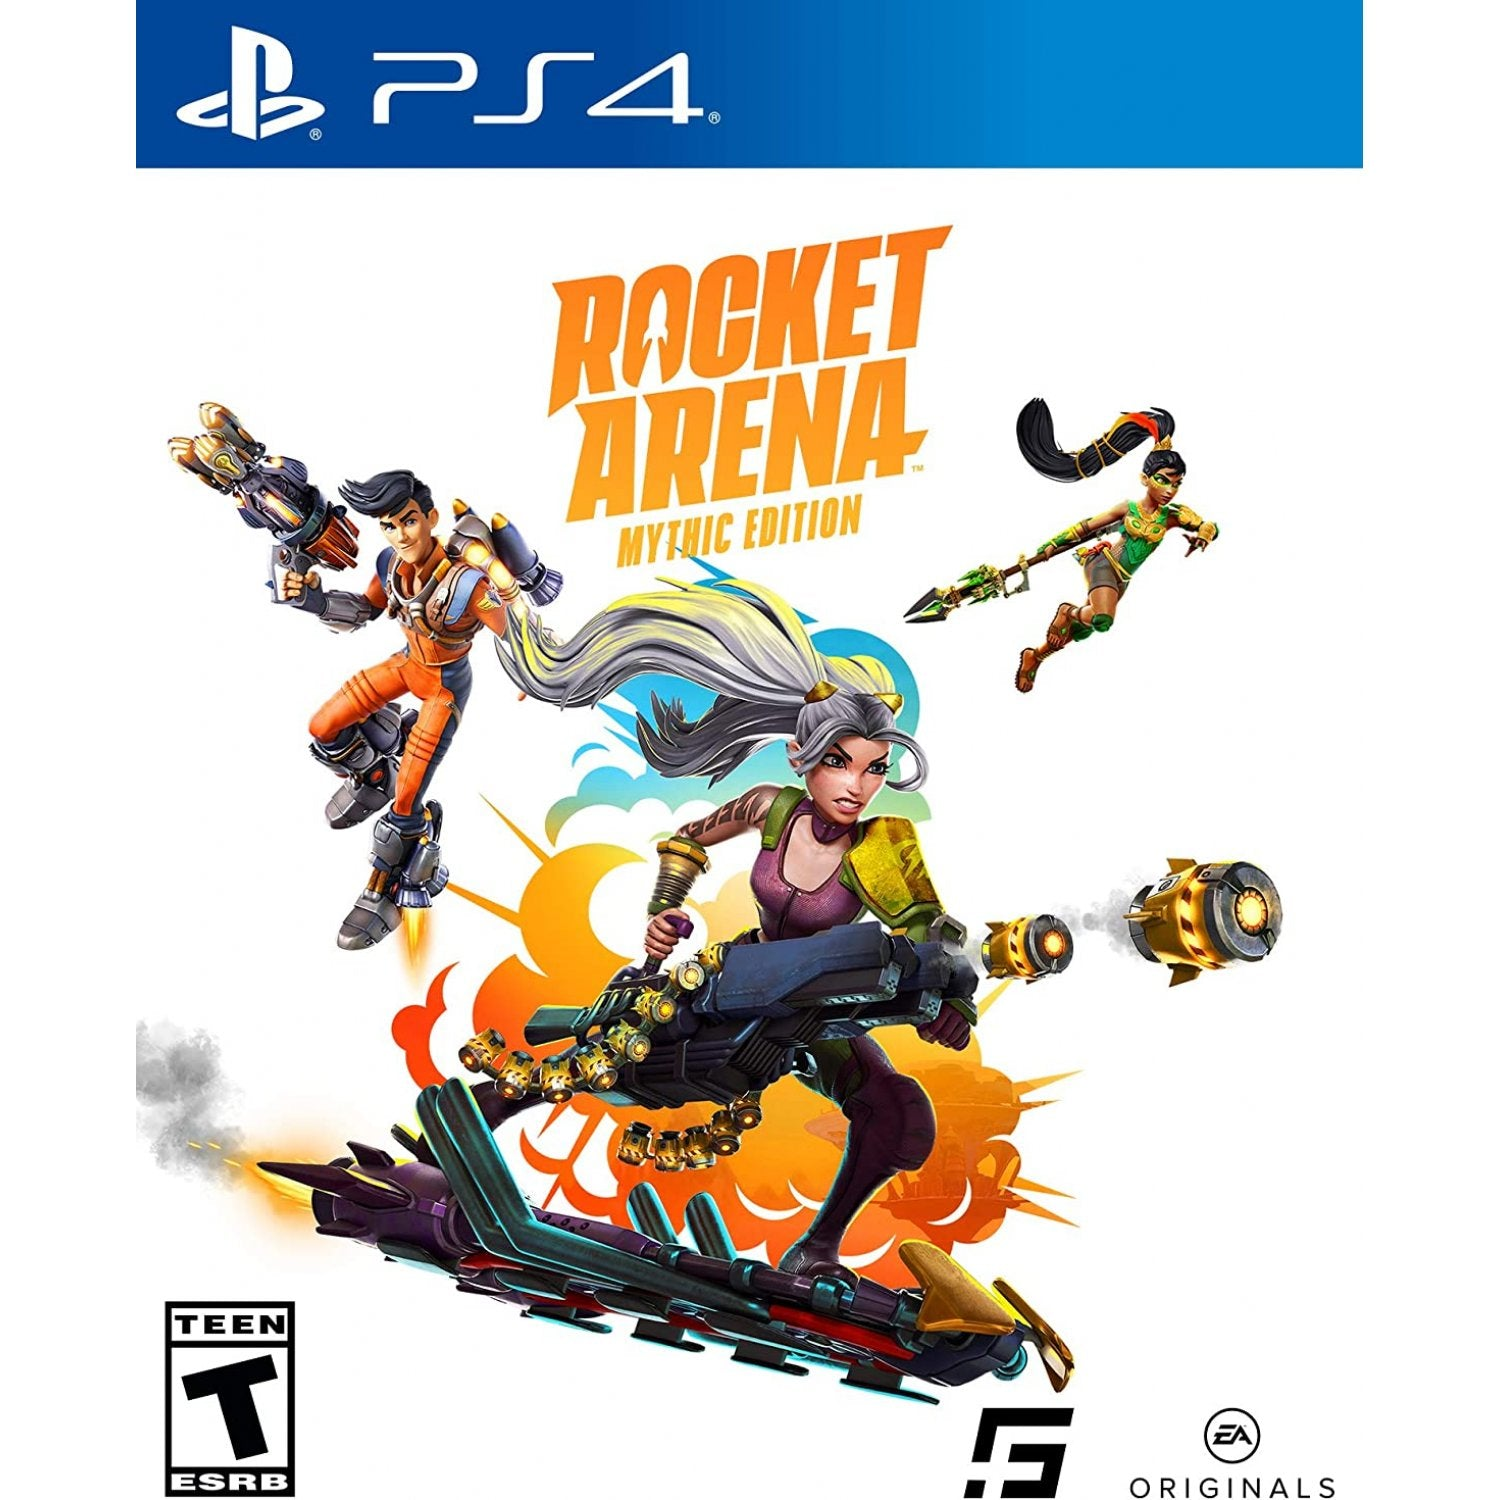 PS4 Rocket Arena [Mythic Edition]